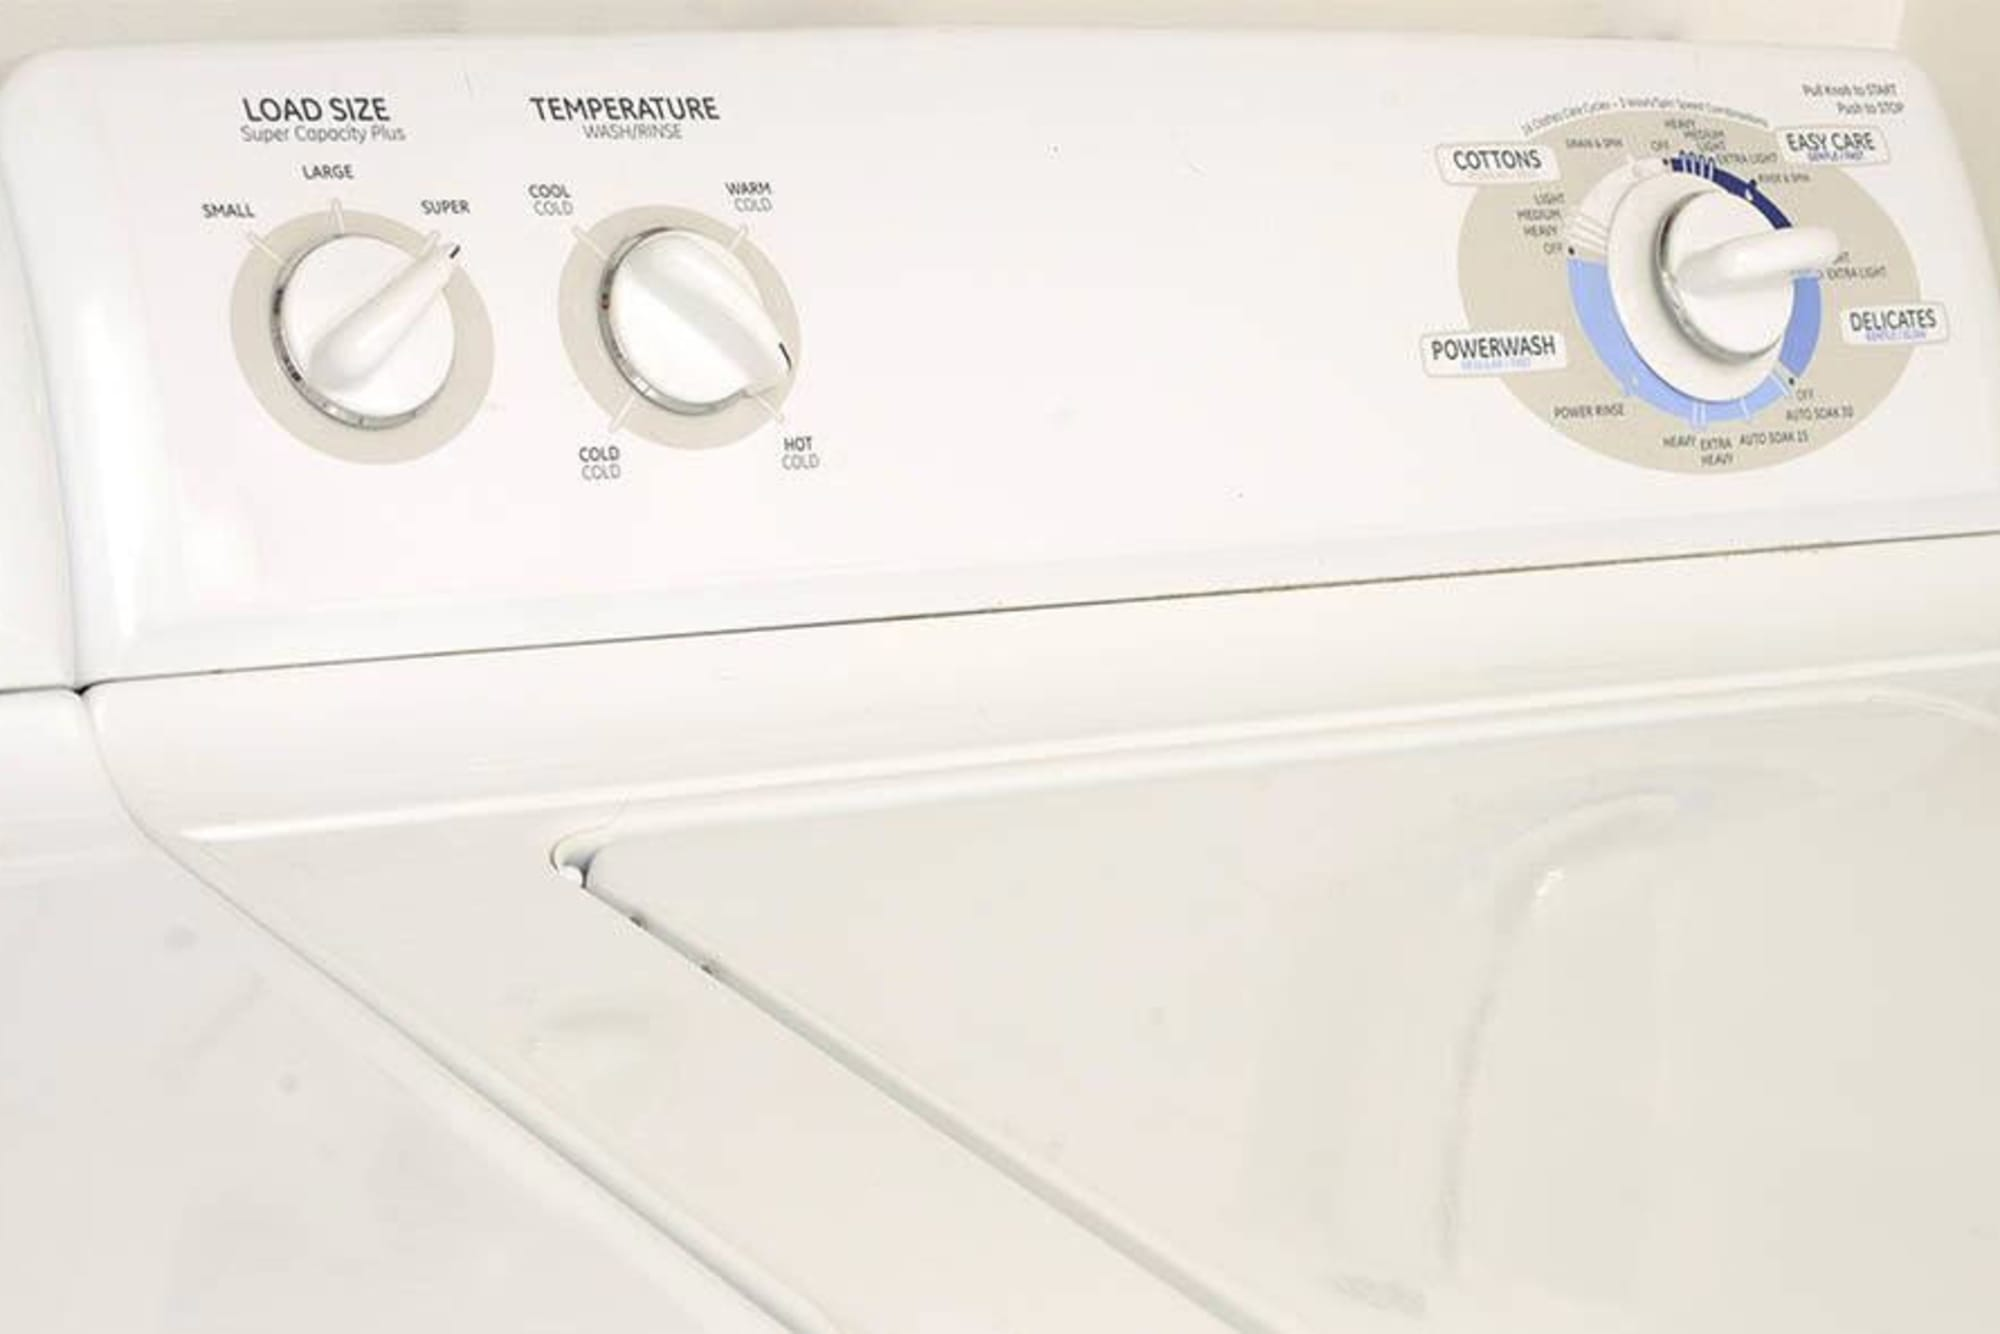 Washer and dryer at Miramonte and Trovas in Sacramento, California